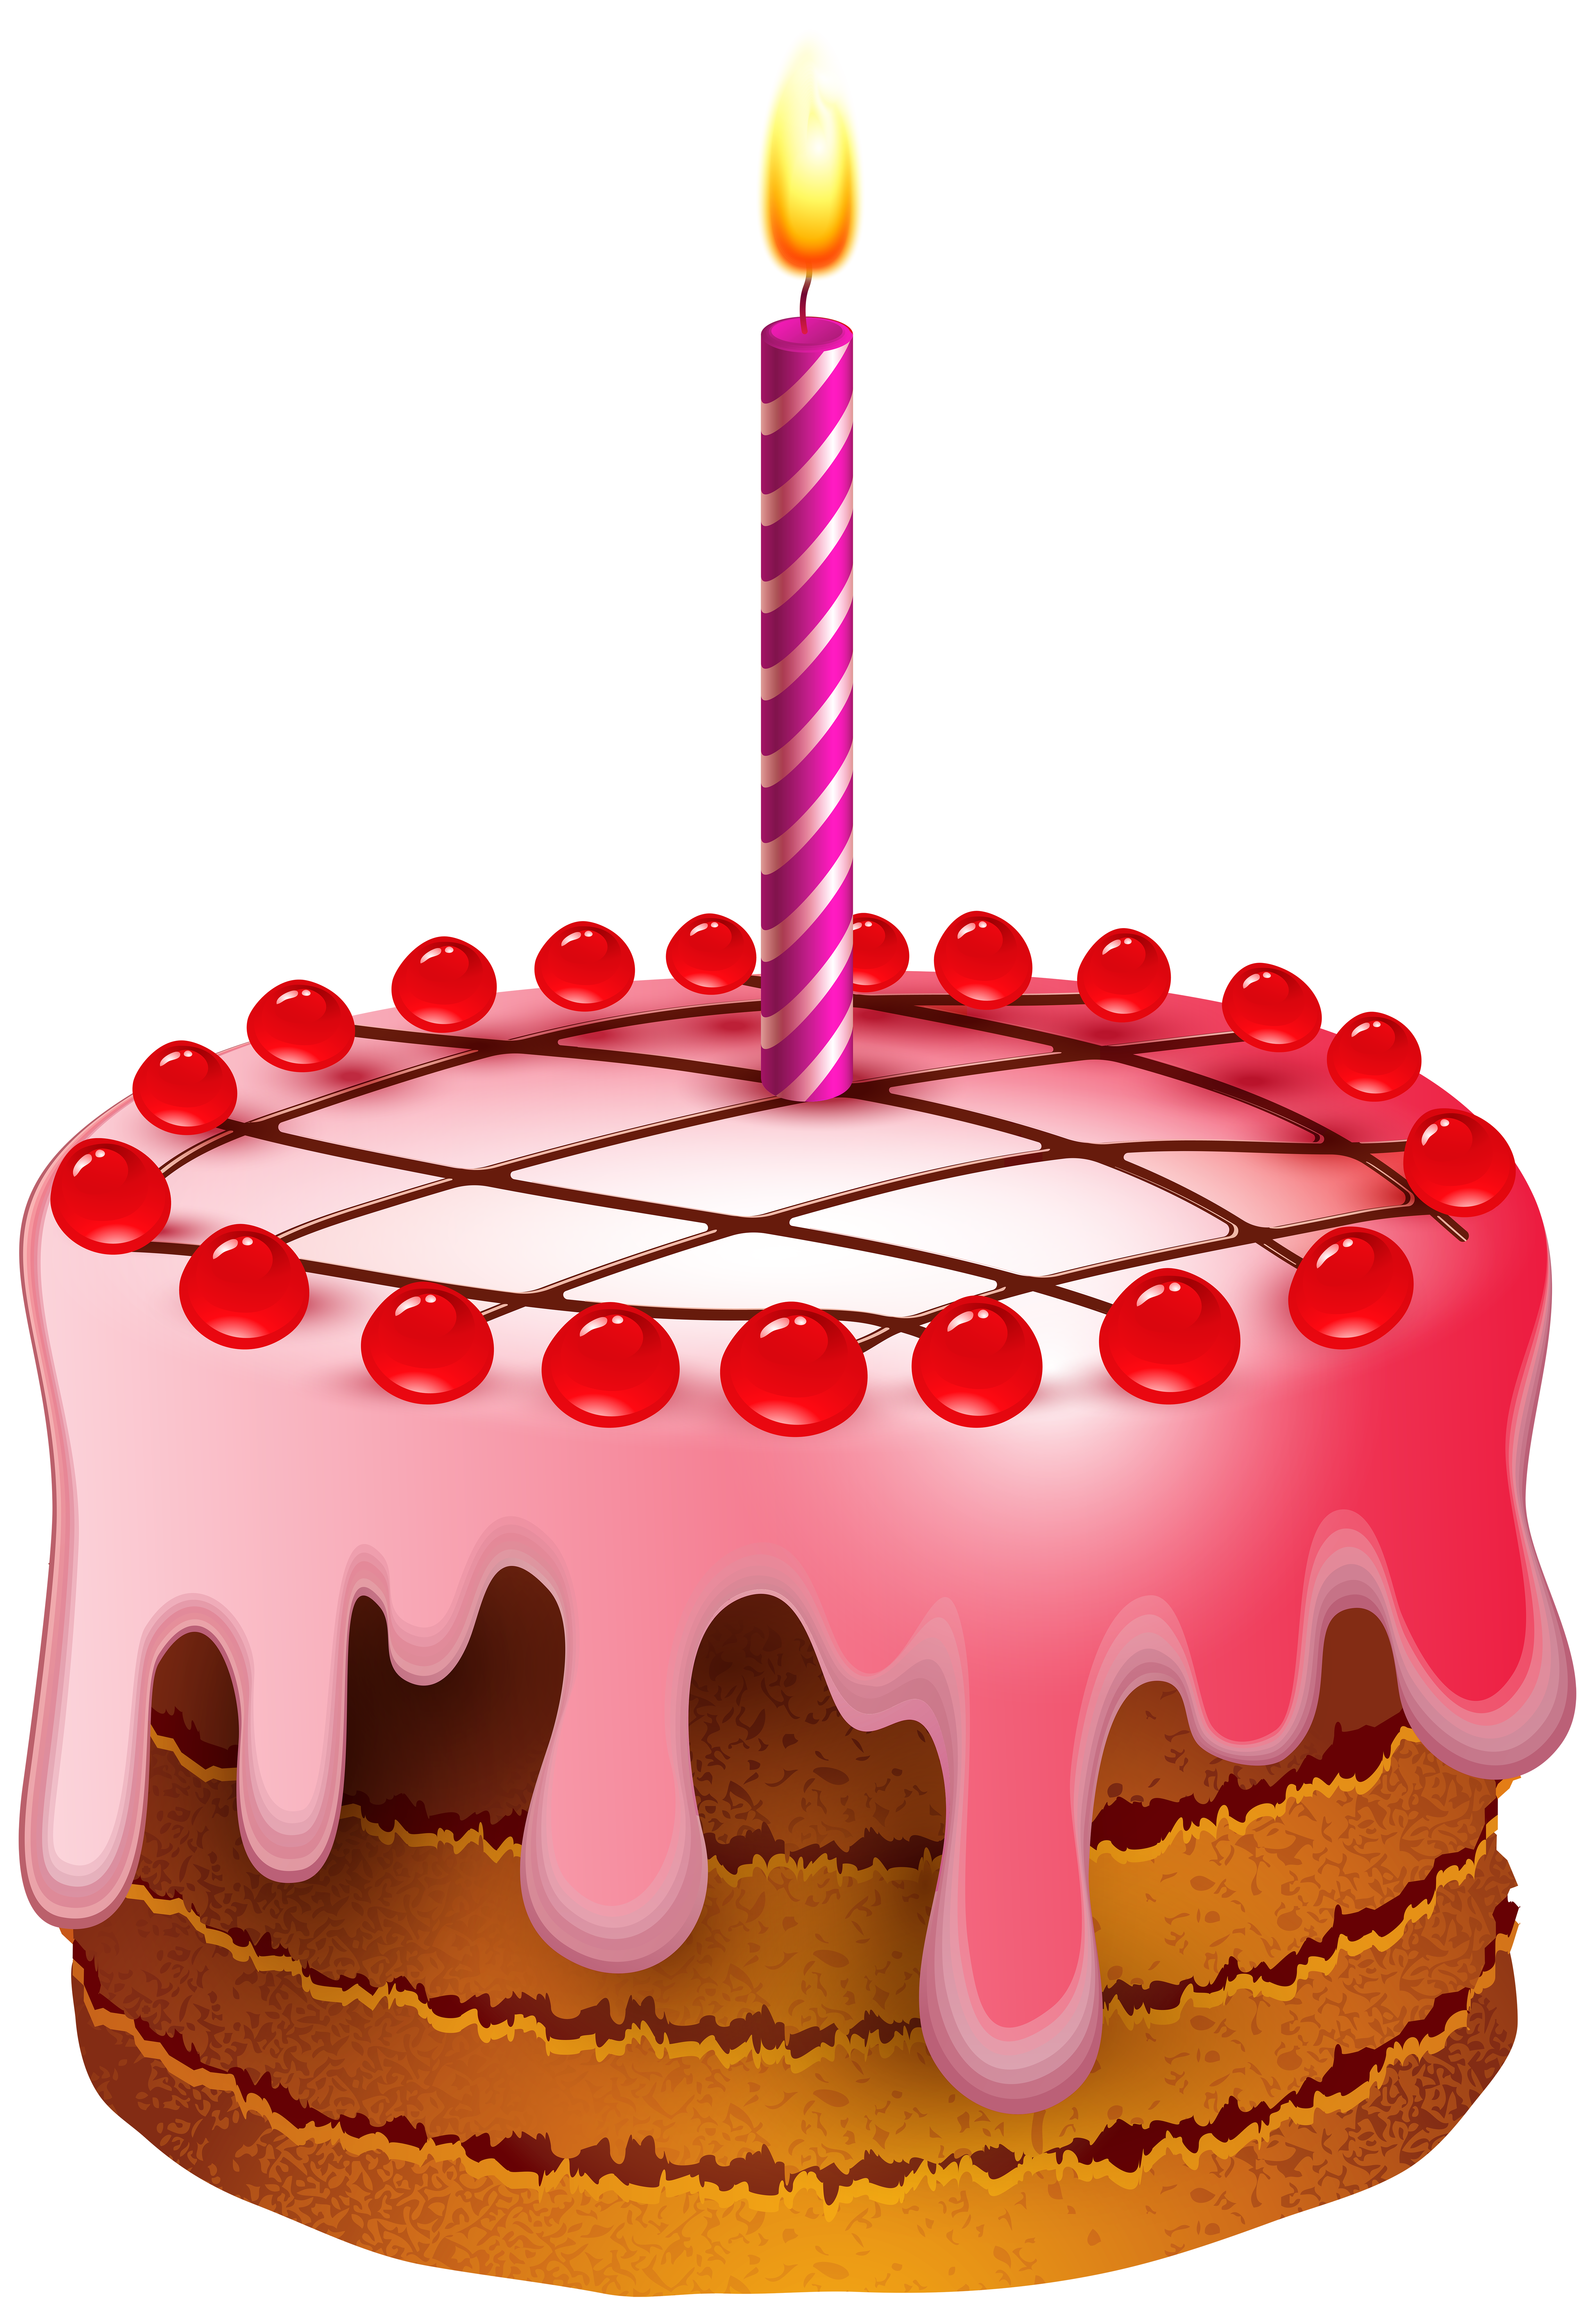 Birthday cake with transparent. Clipart candle pink candle